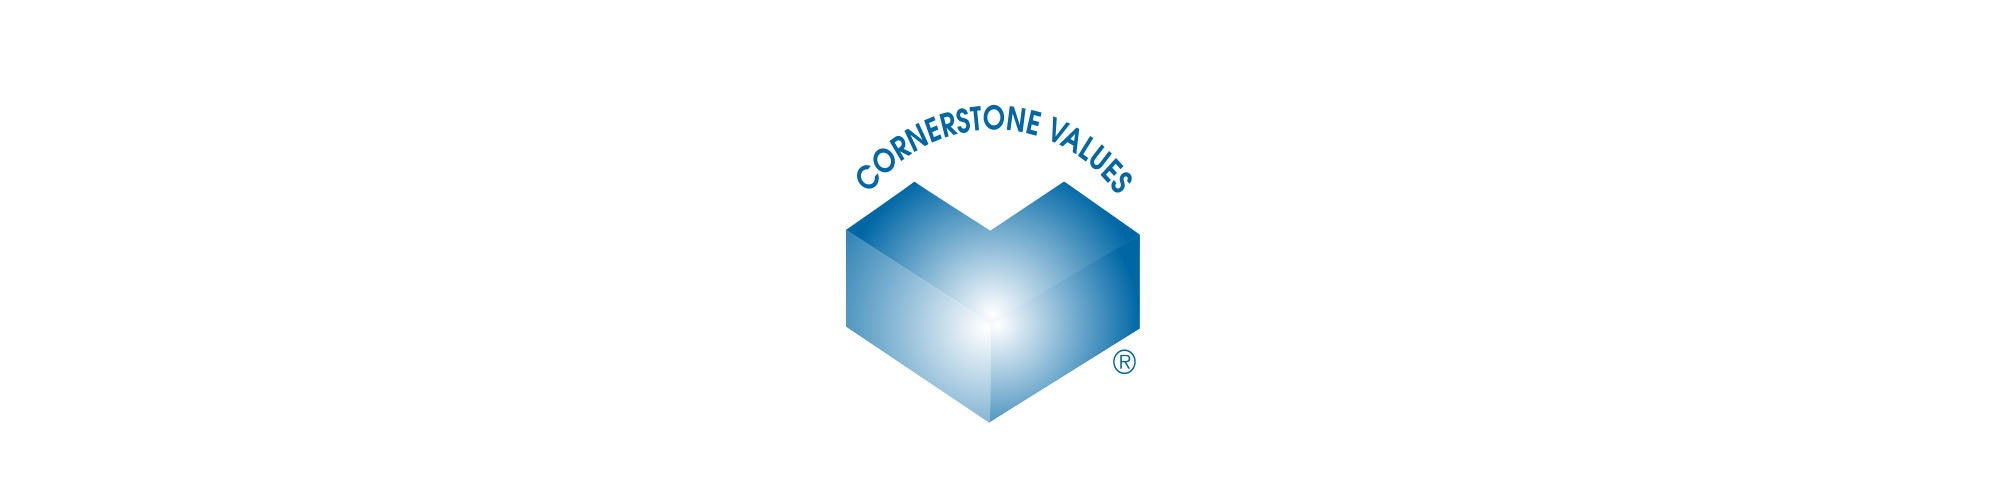 Cornerstone Value for Term 1 is Responsibility